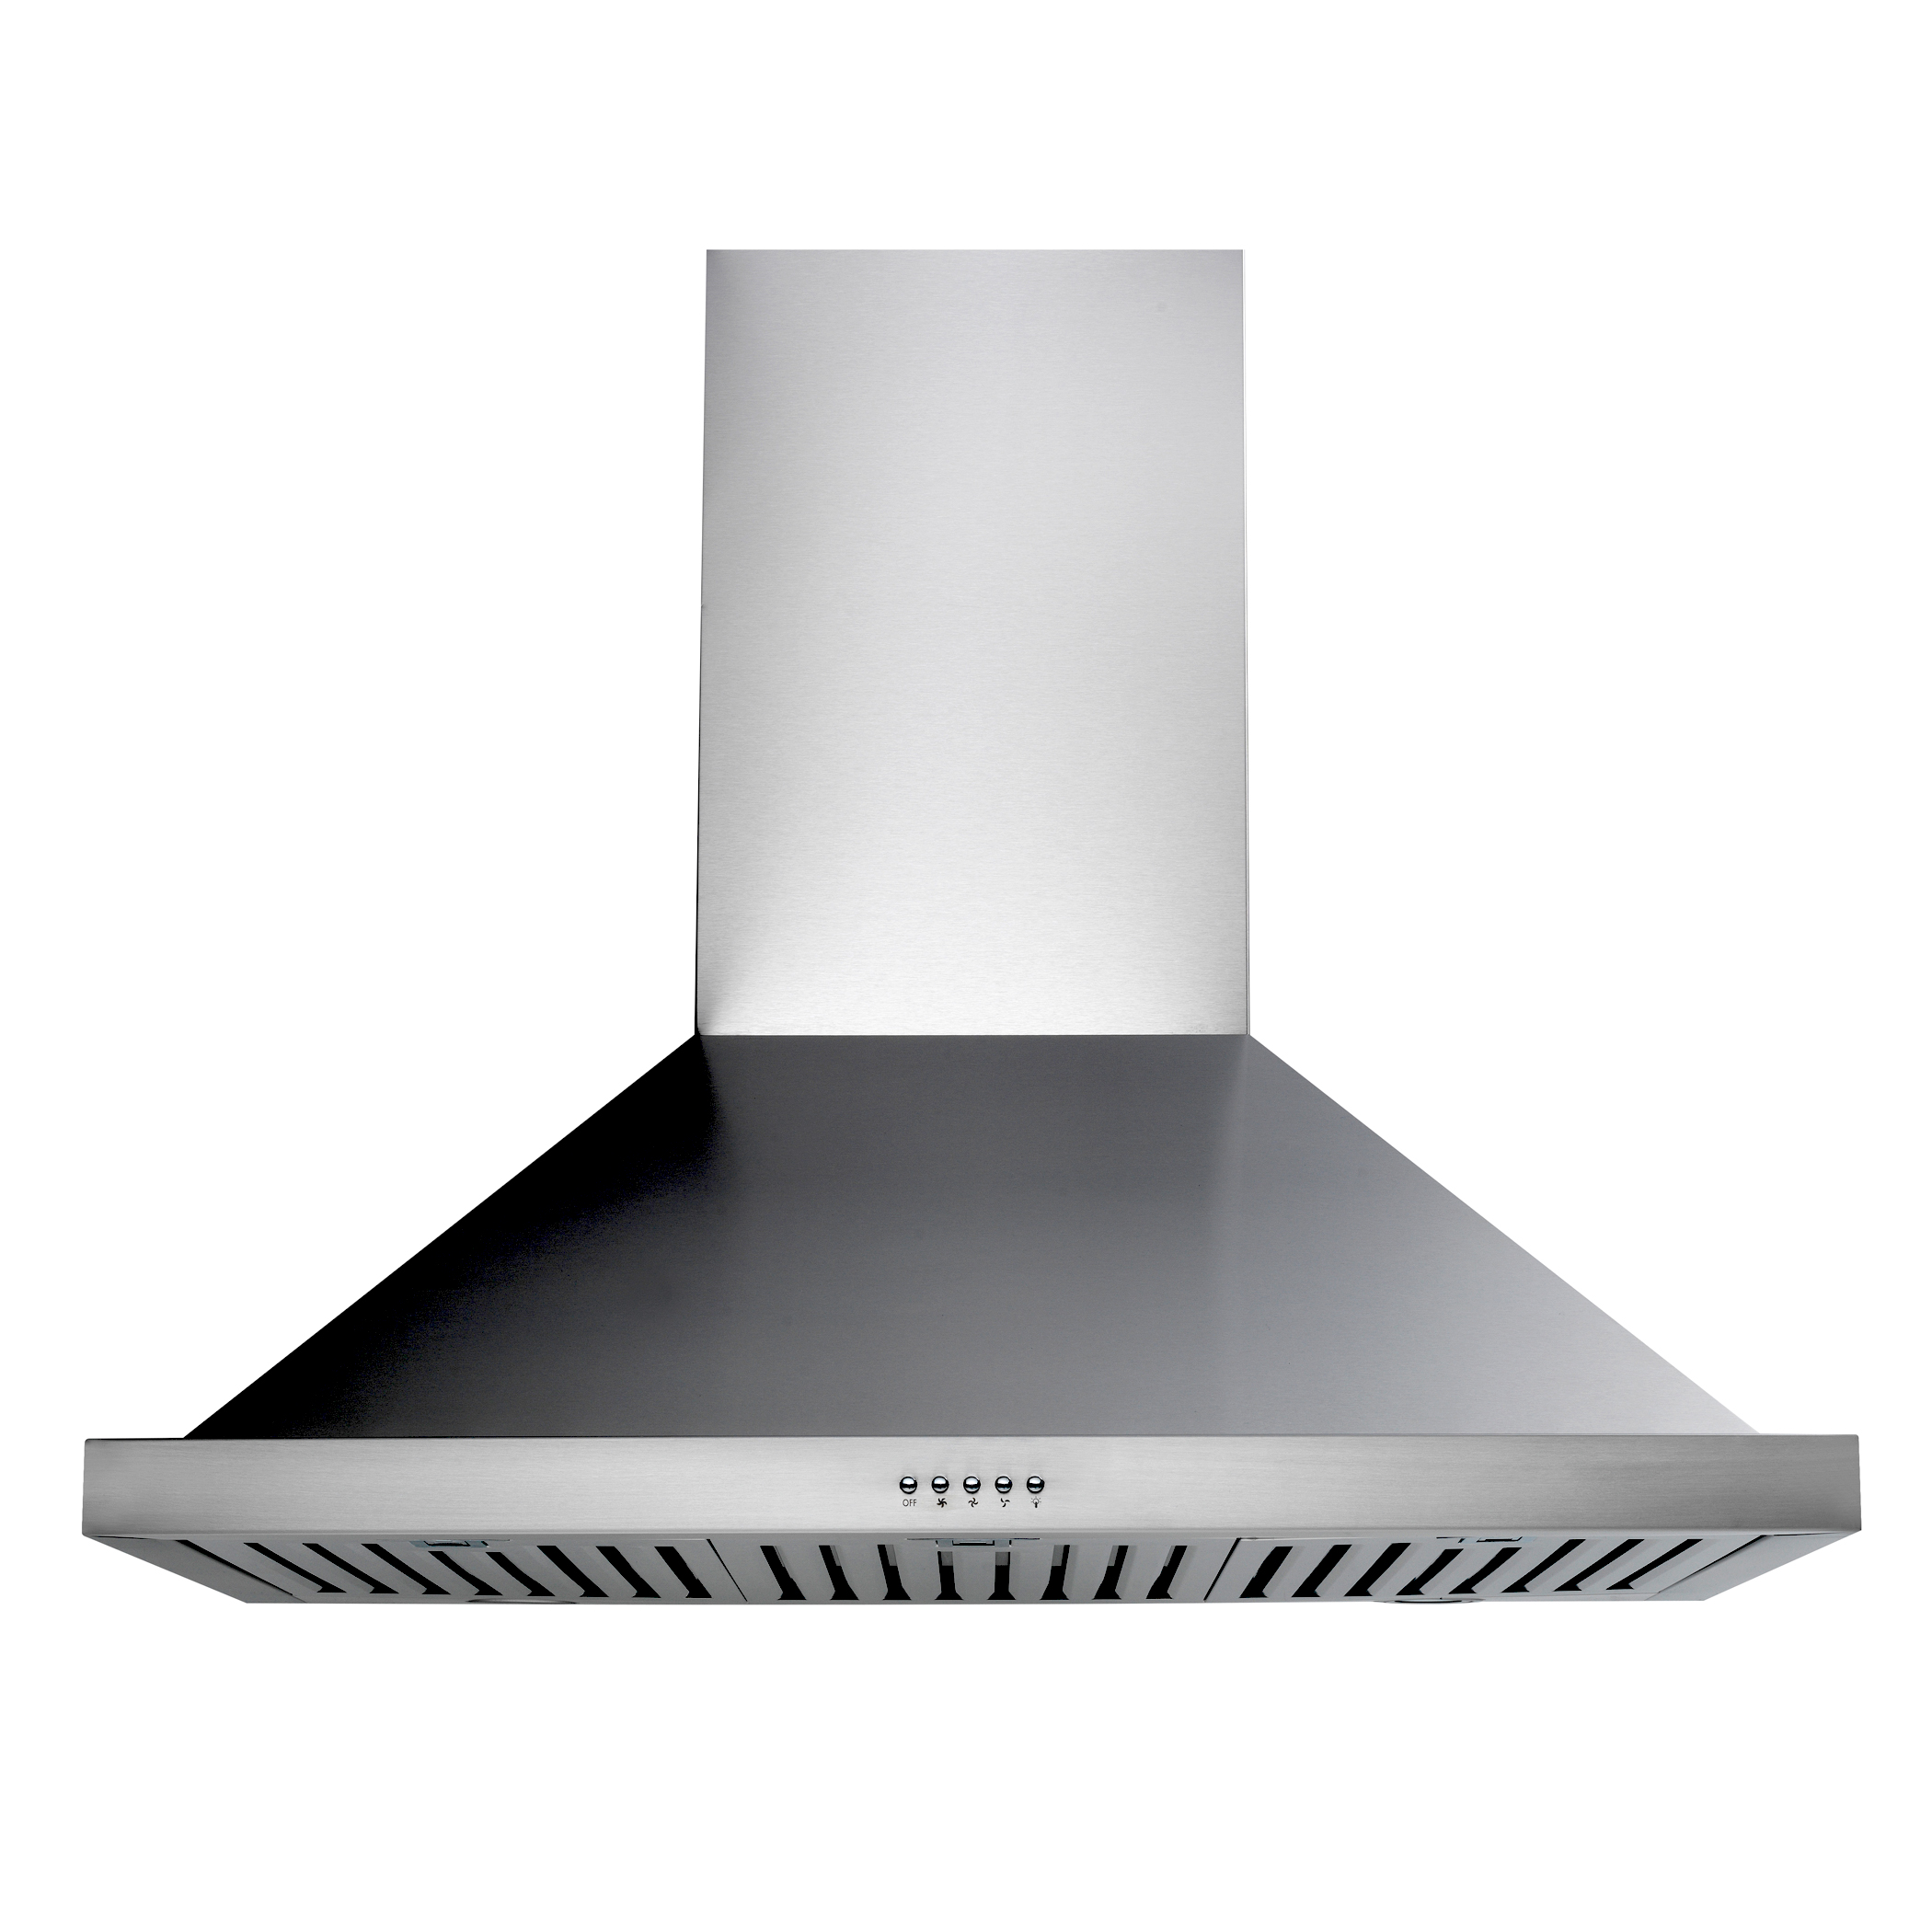 Roxon 900 Cfm 30 Inches Range Hood Kitchen Exhaust Fan Stainless Steel Wall Mounted Style Rxn W18 30 Walmart Canada